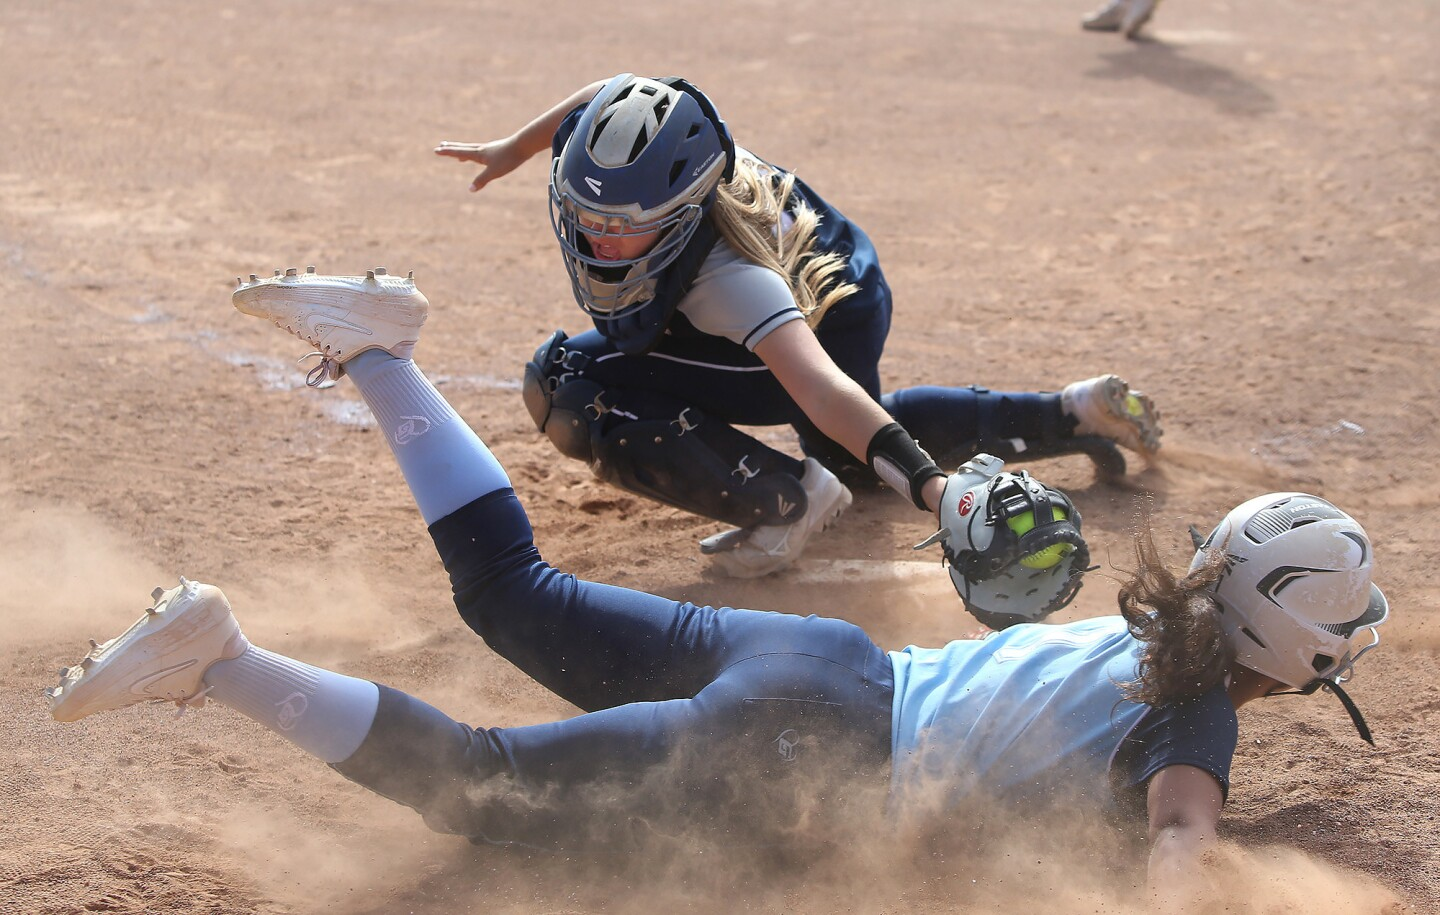 Photo Gallery: Newport Harbor vs. Corona del Mar in softball